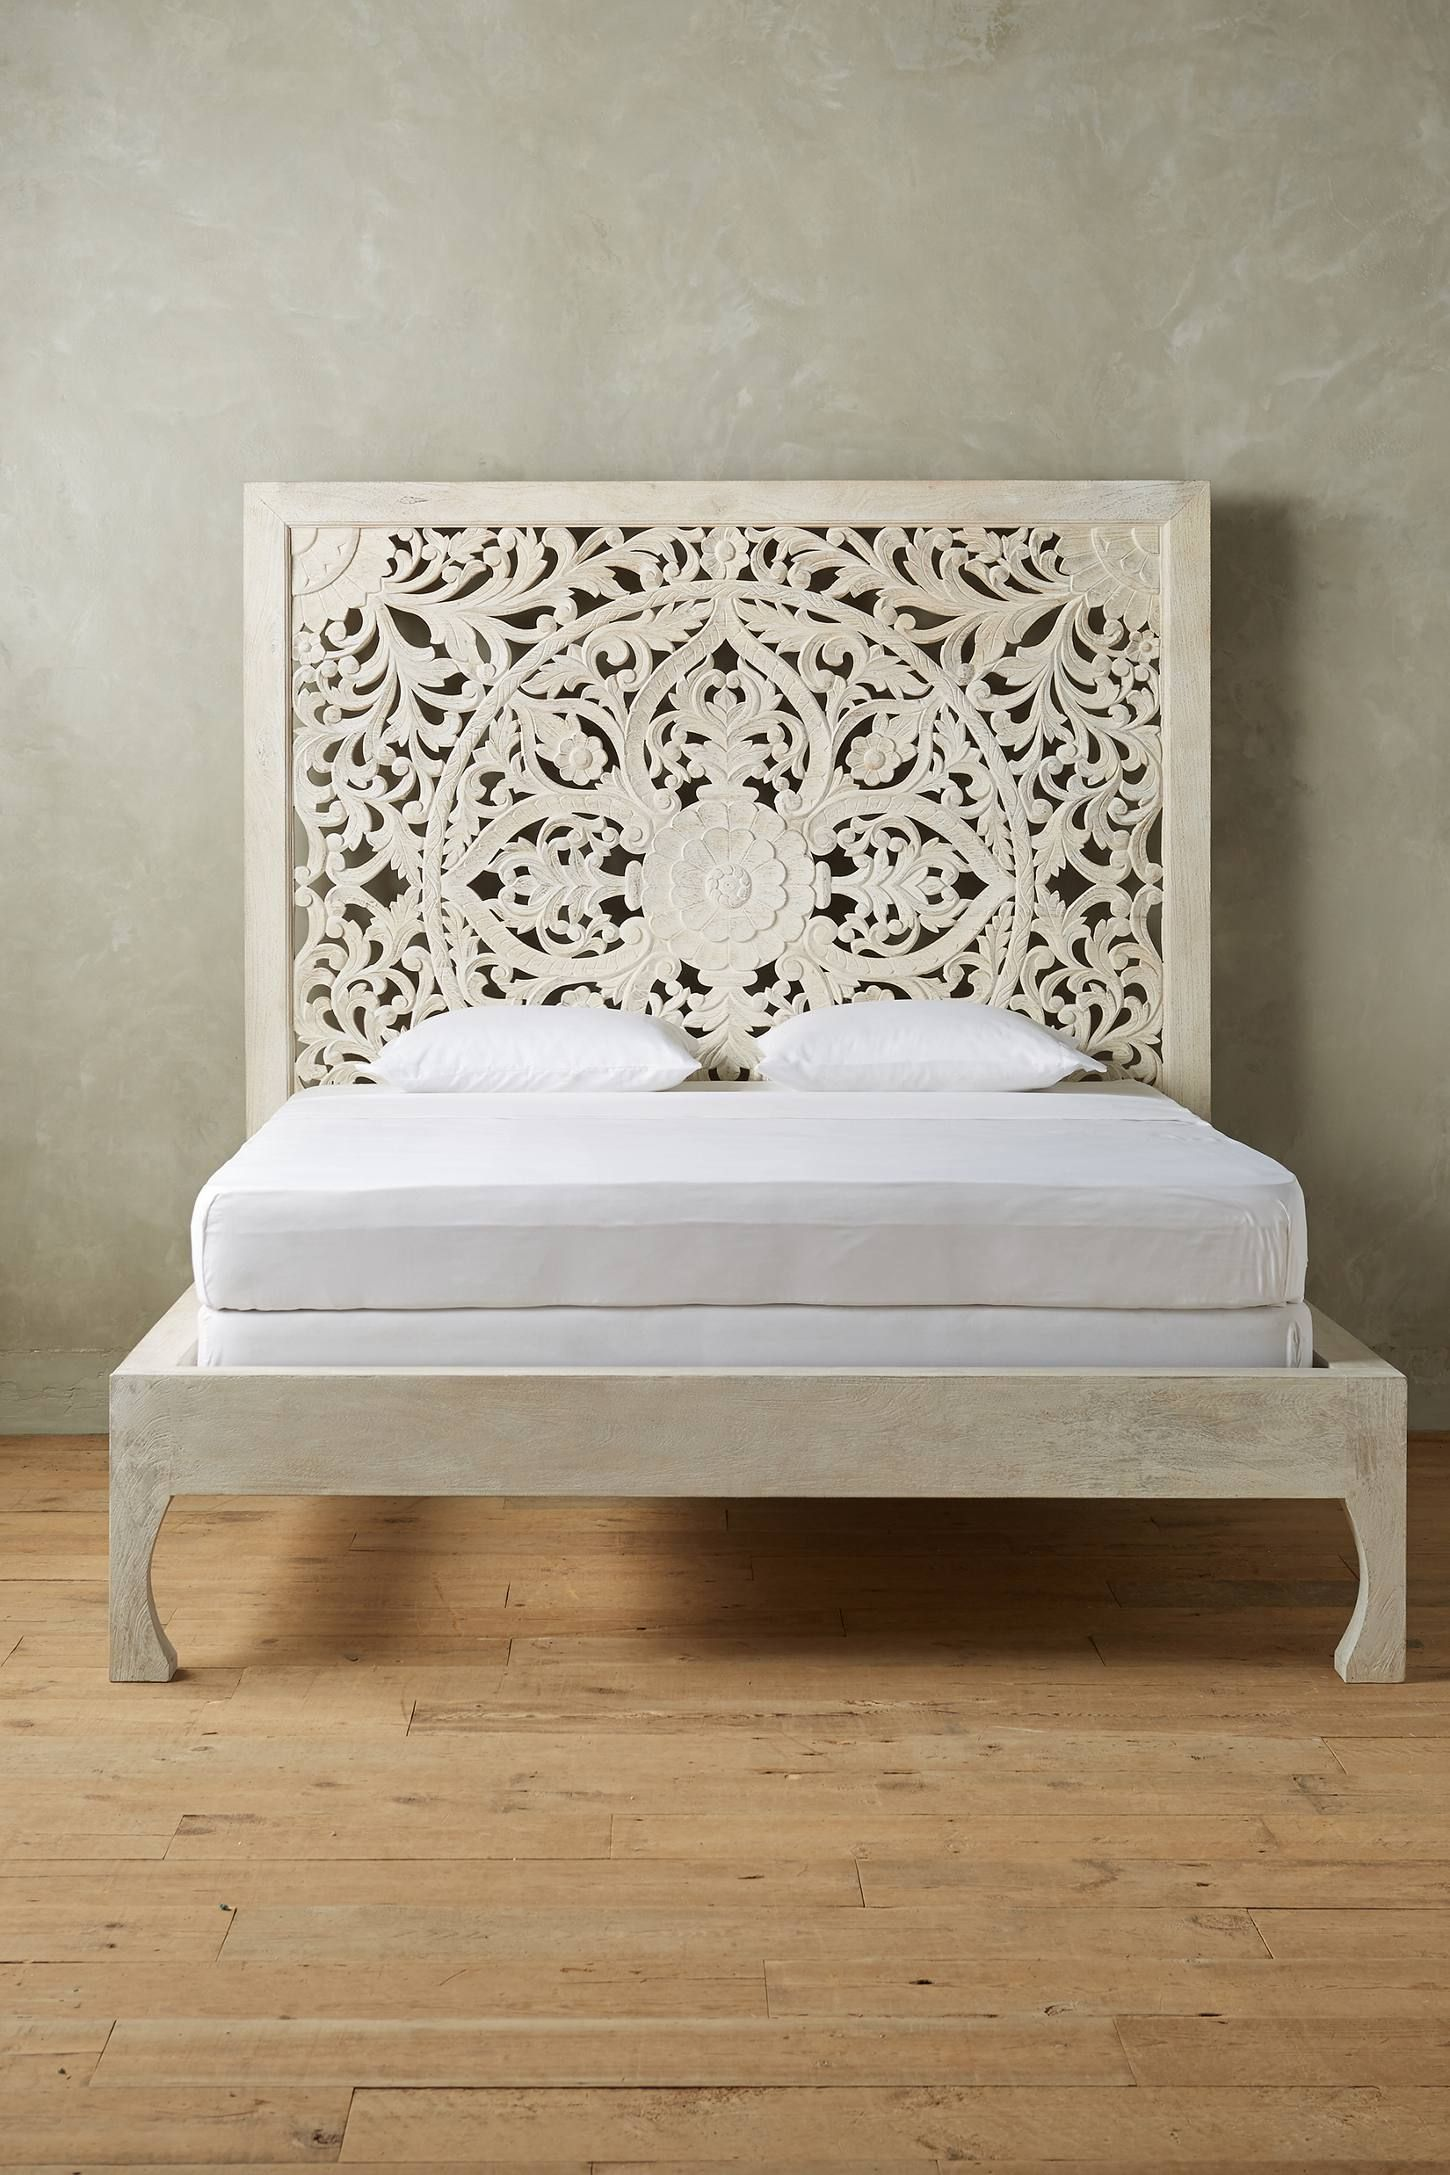 Mueble Marroqui Lombok Bed Decor Pinterest Alcoba Recamara Y Muebles